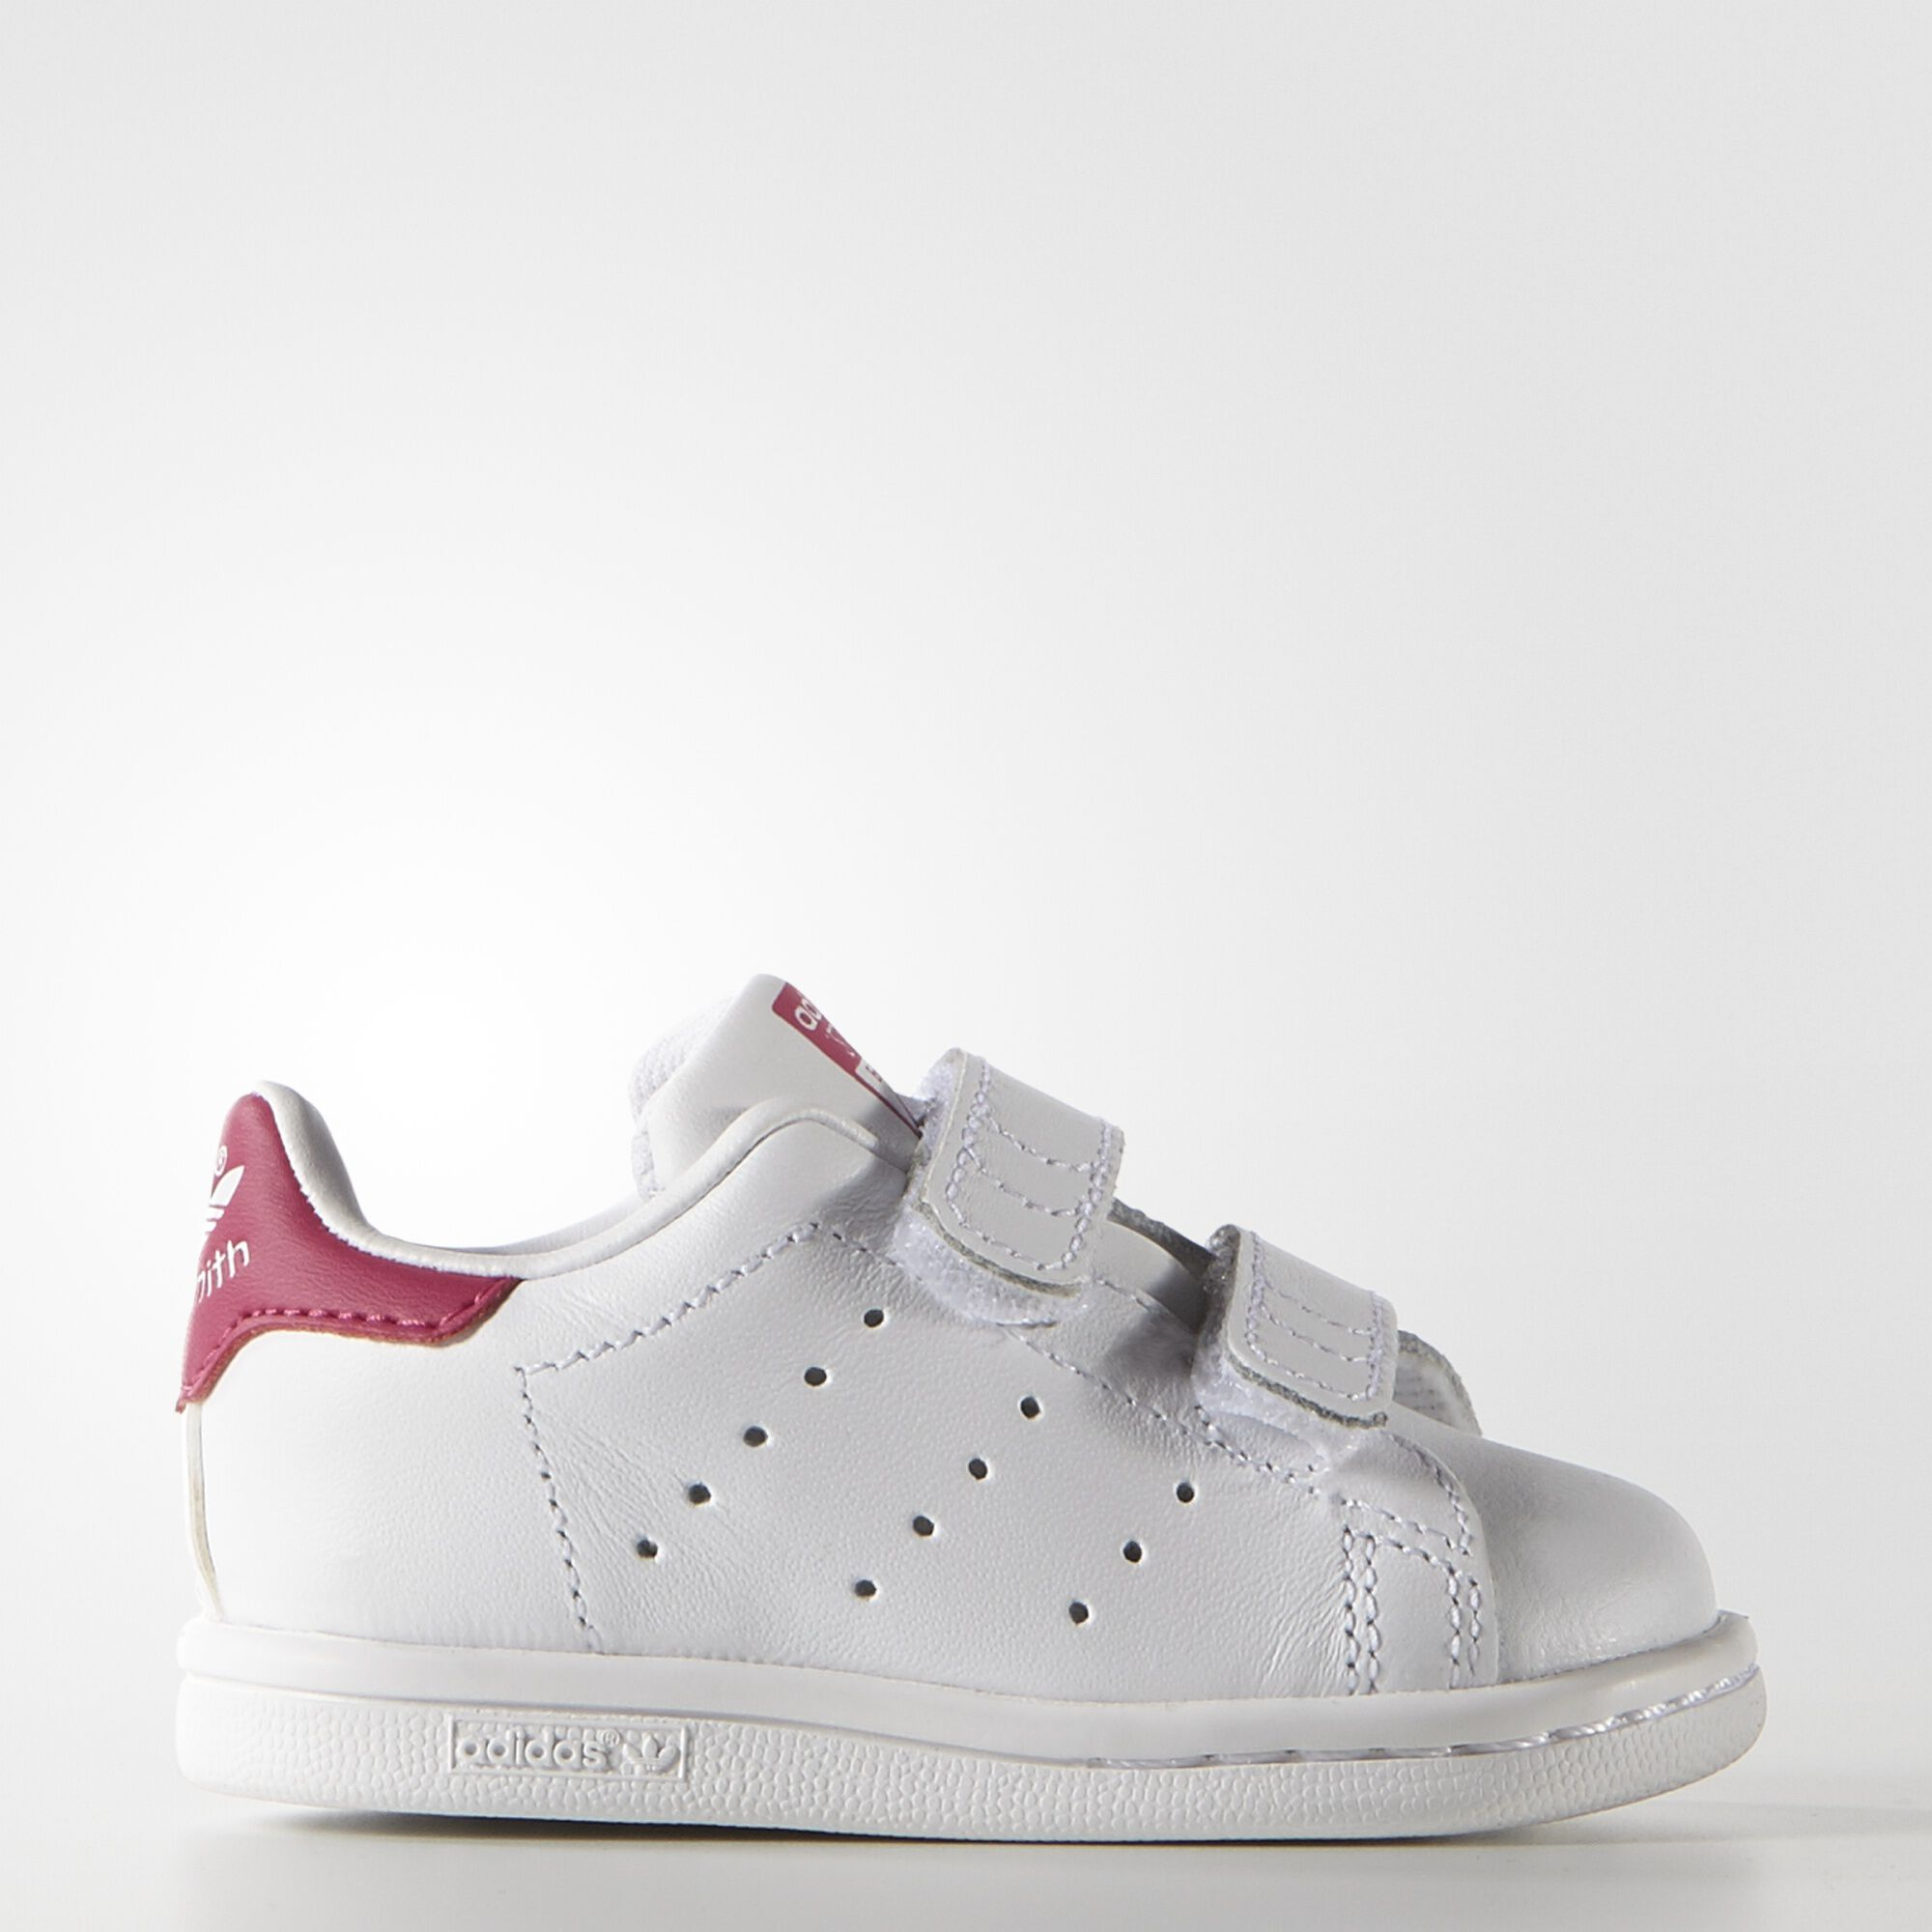 adidas stan smith 431pd